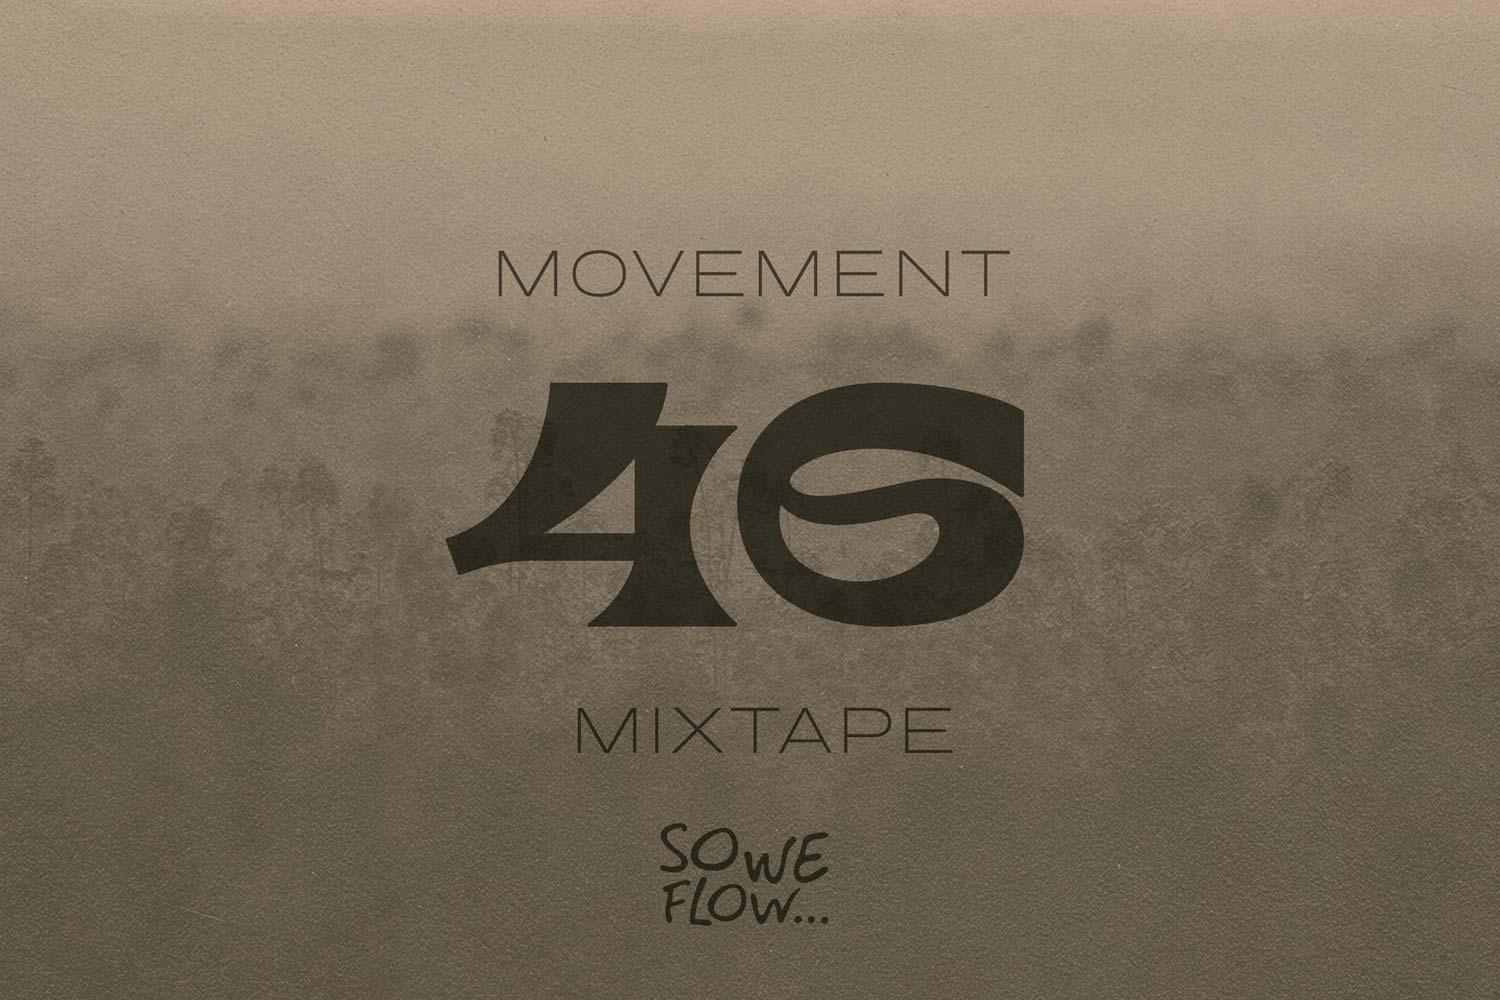 So We Flow... Movement Mixtape No.46 Artwork